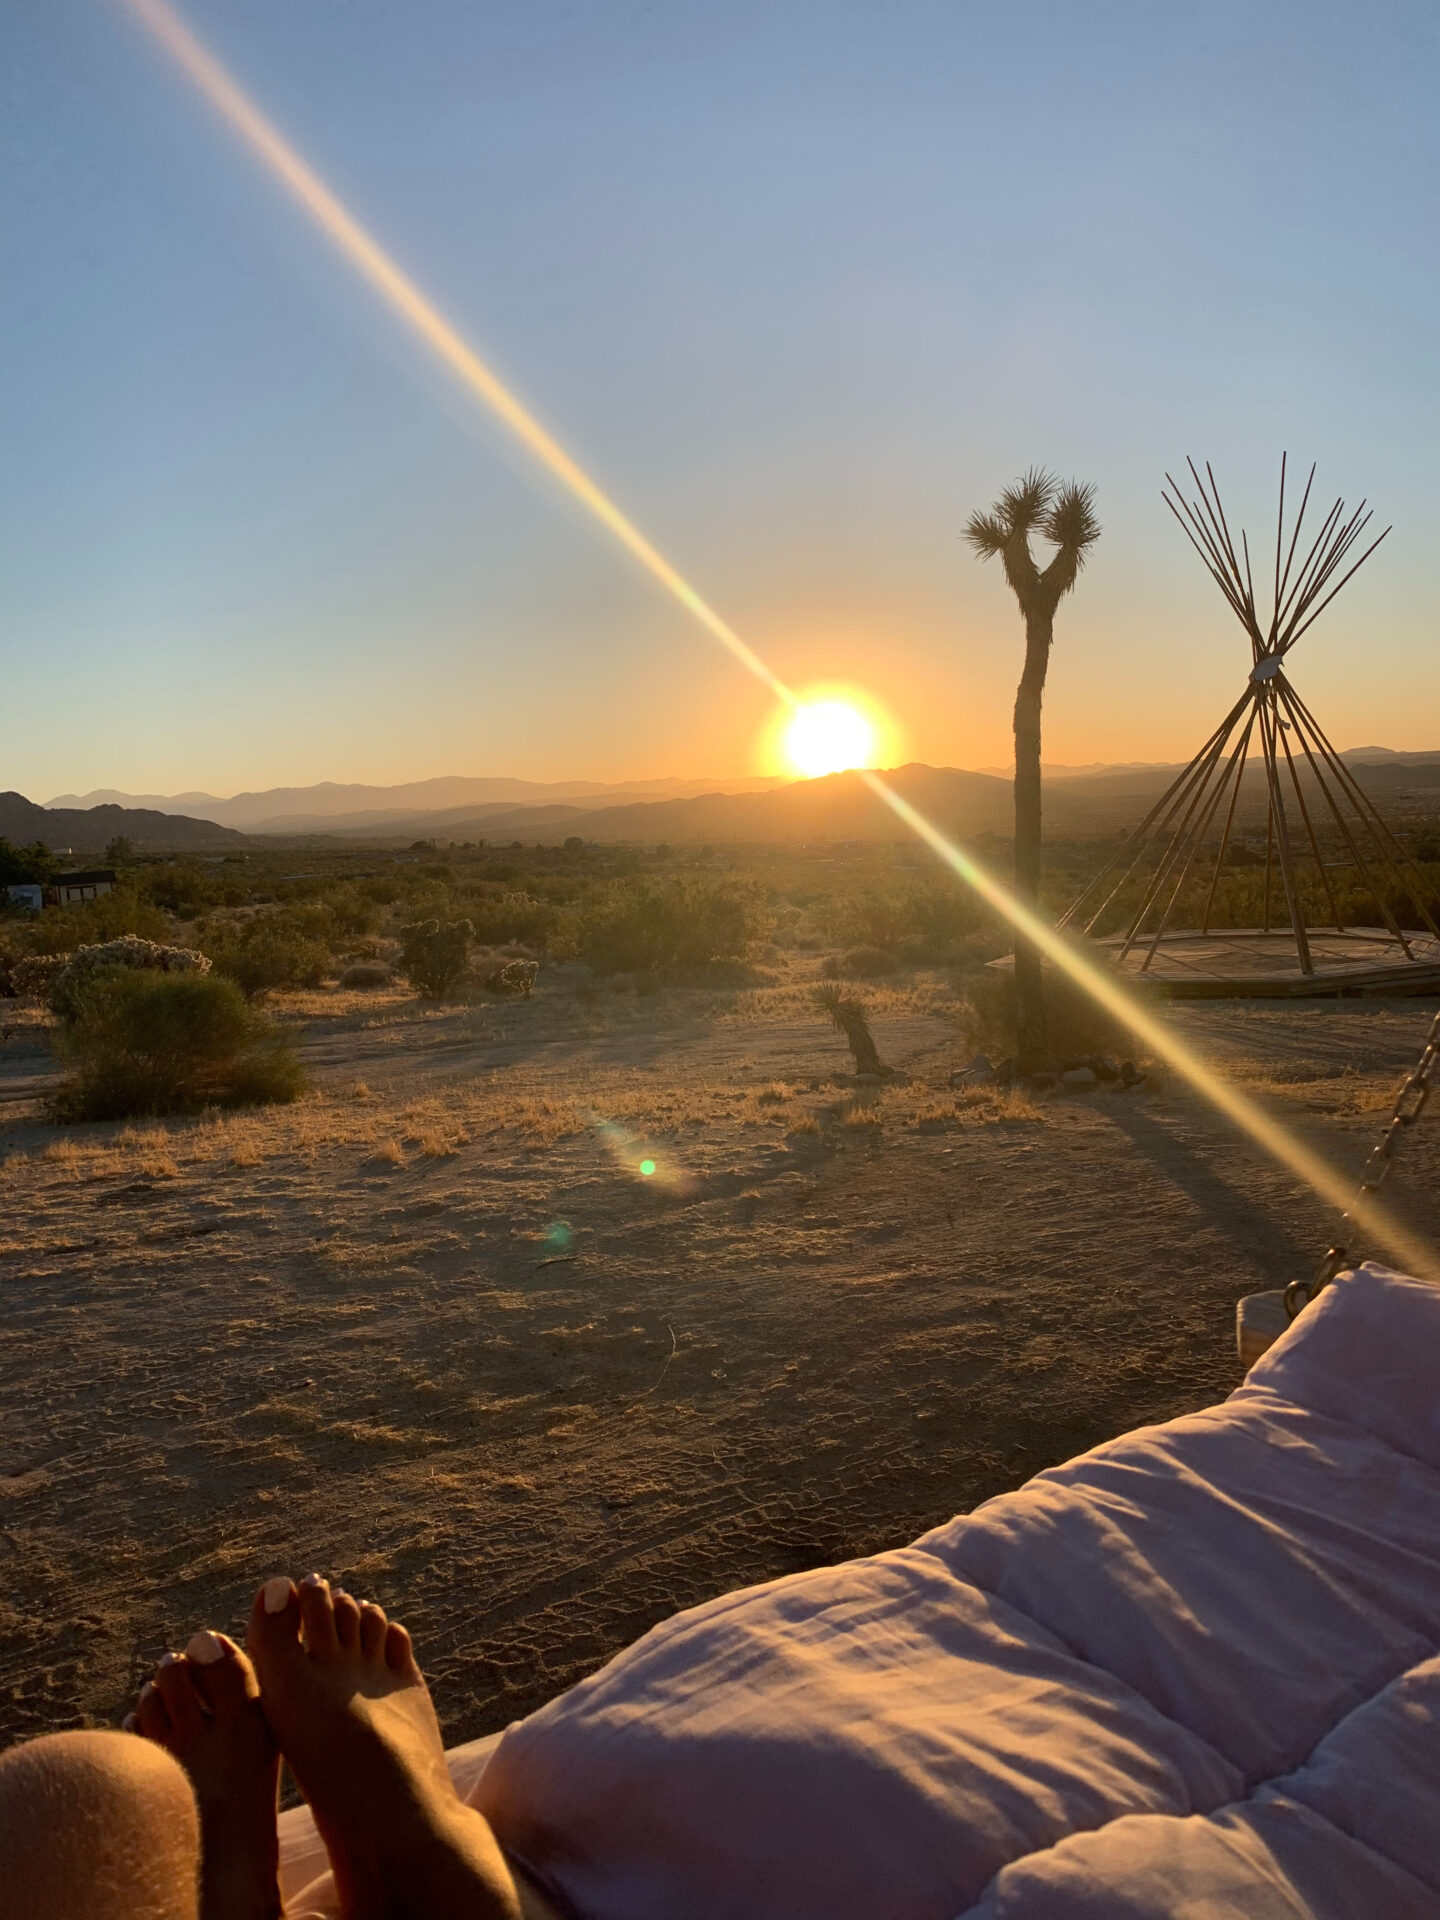 Alexis Alcala shares her travel experience in joshua tree